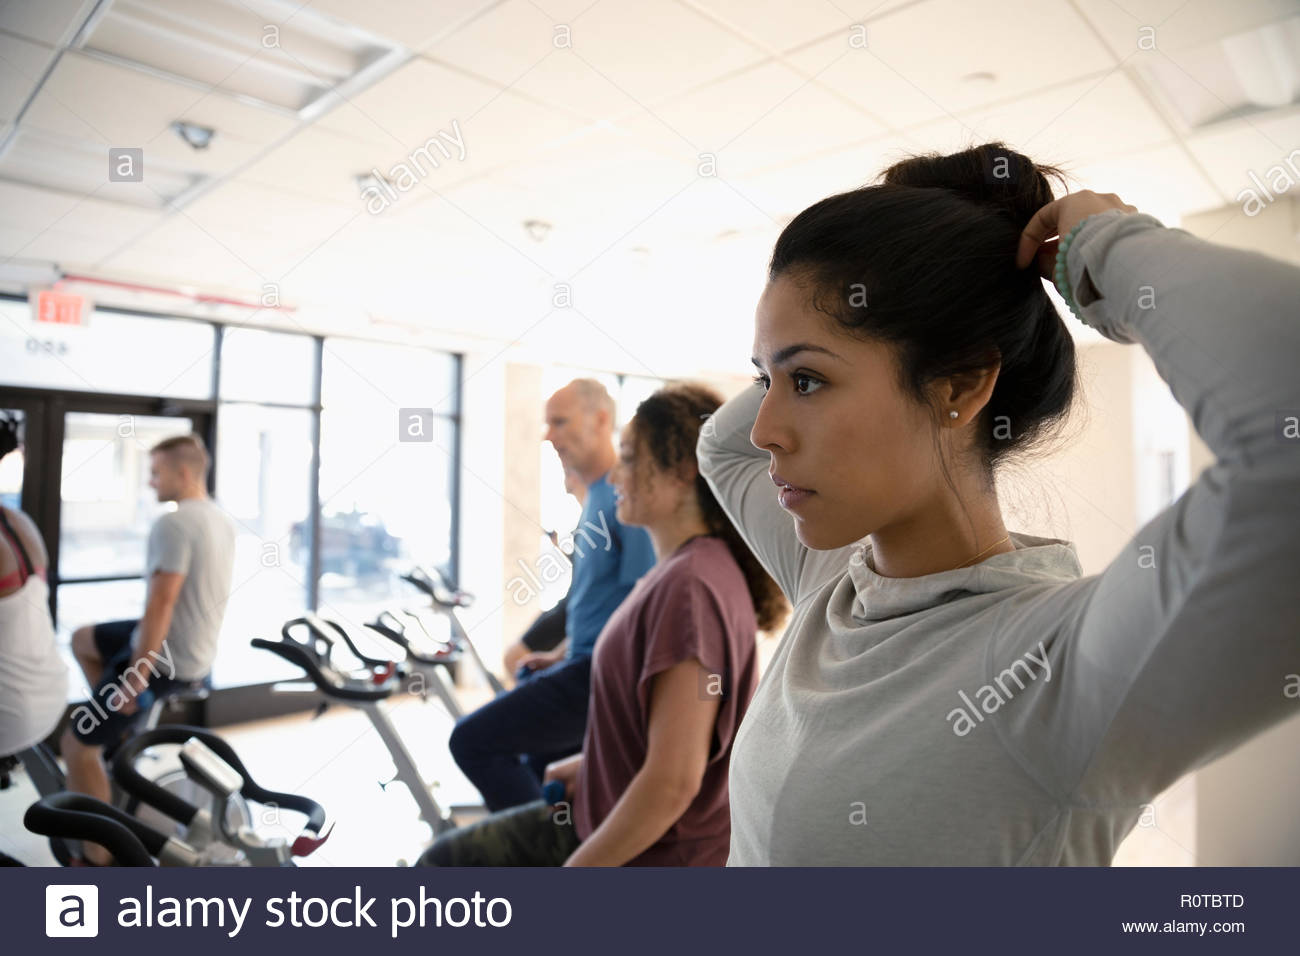 Woman preparing for spin class in gym Stock Photo